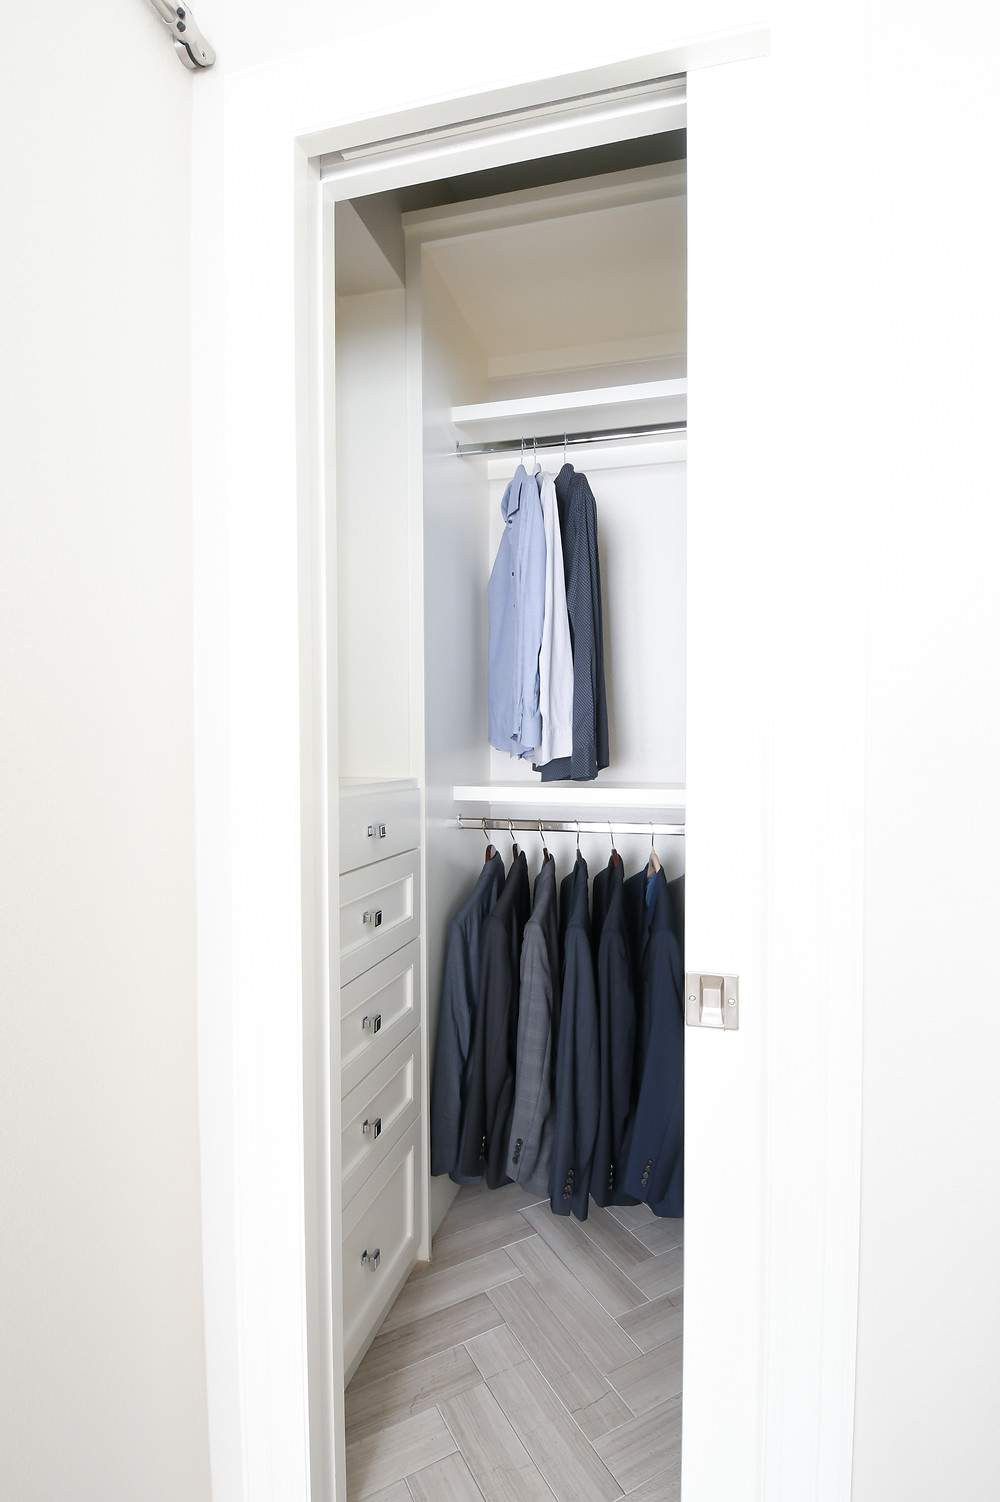 Transitional bathroom with updated closet space by Modern bedroom retreat by Houston interior design firm Nancy Lane Interiors.